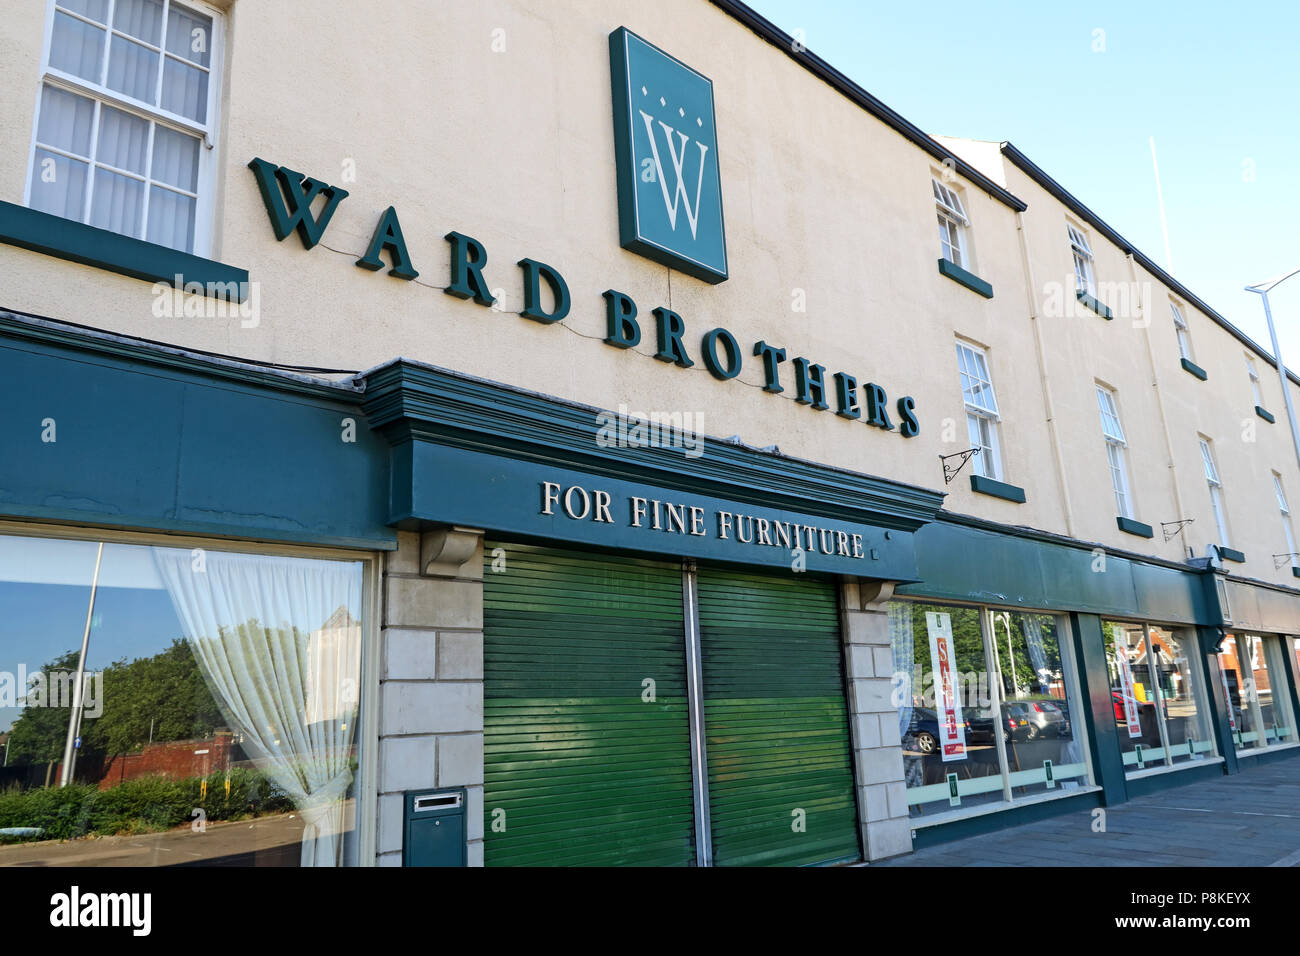 @HotpixUK,GoTonySmith,Doncaster,South Yorkshire,Yorkshire,England,Doncaster Yorkshire,town,shop,shops,retail,Danum,Roman Danum,DN1 Postcode,chairs,tables,Ward Brothers Furniture Store,29 - 40 Waterdale,UK,DN1 3EY,Ward,Brothers